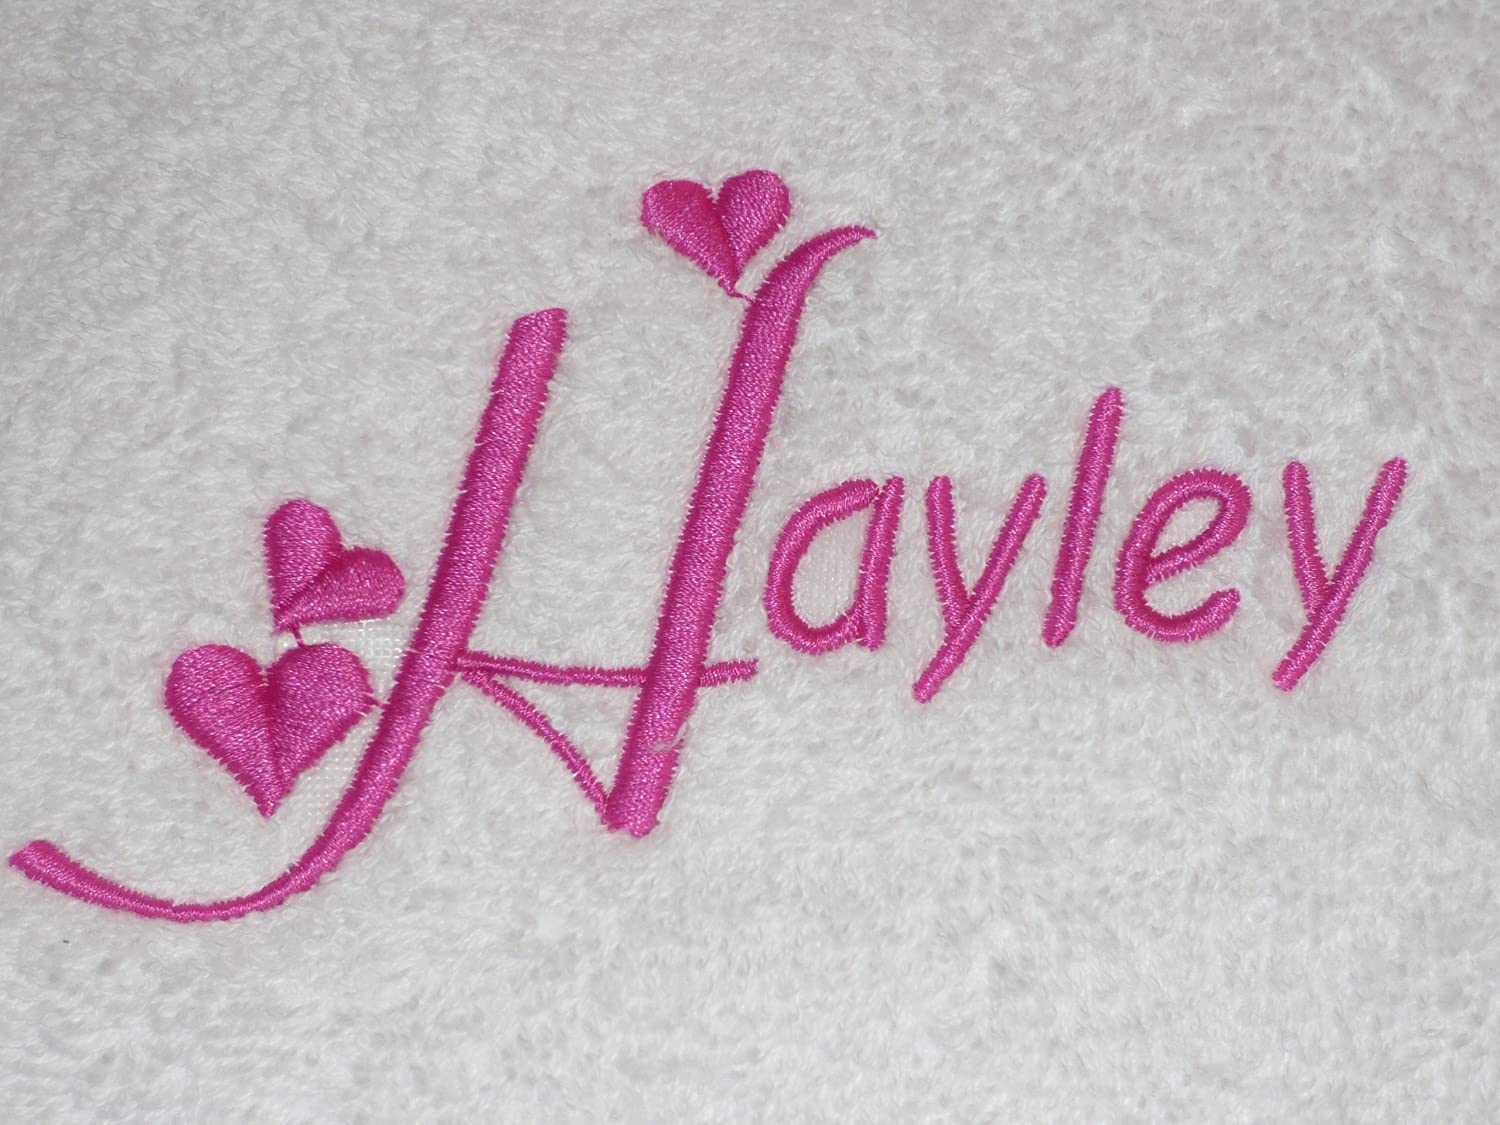 Personalised wedding gift dressing gown: Amazon.co.uk: Kitchen & Home